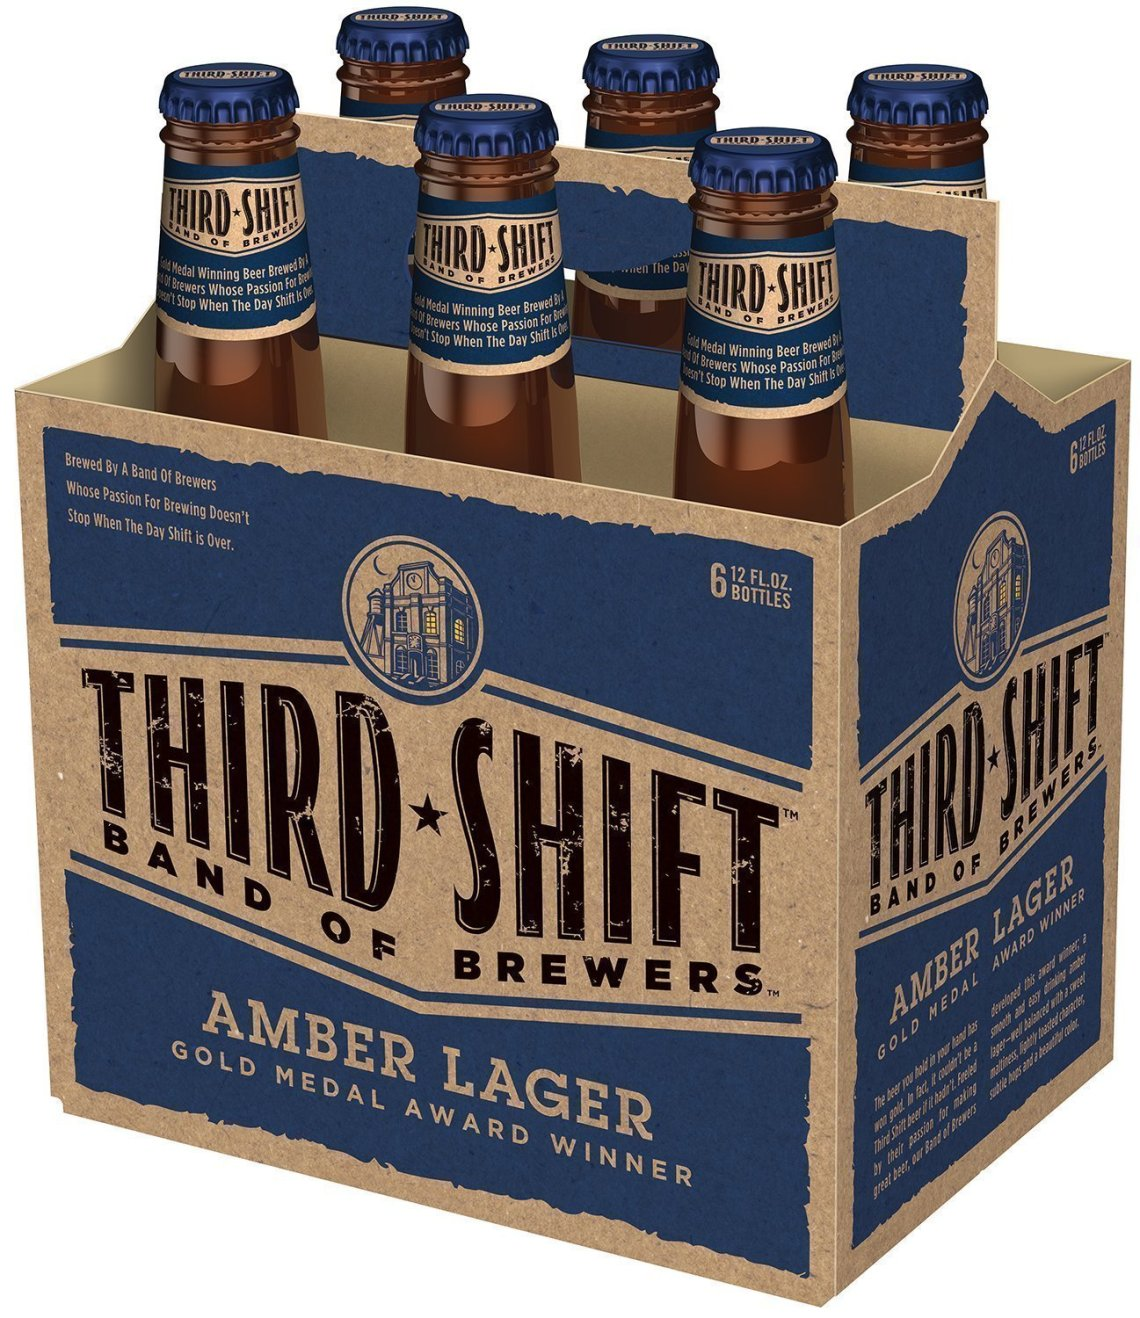 Band of Brewers Third Shift Amber Lager (2013)